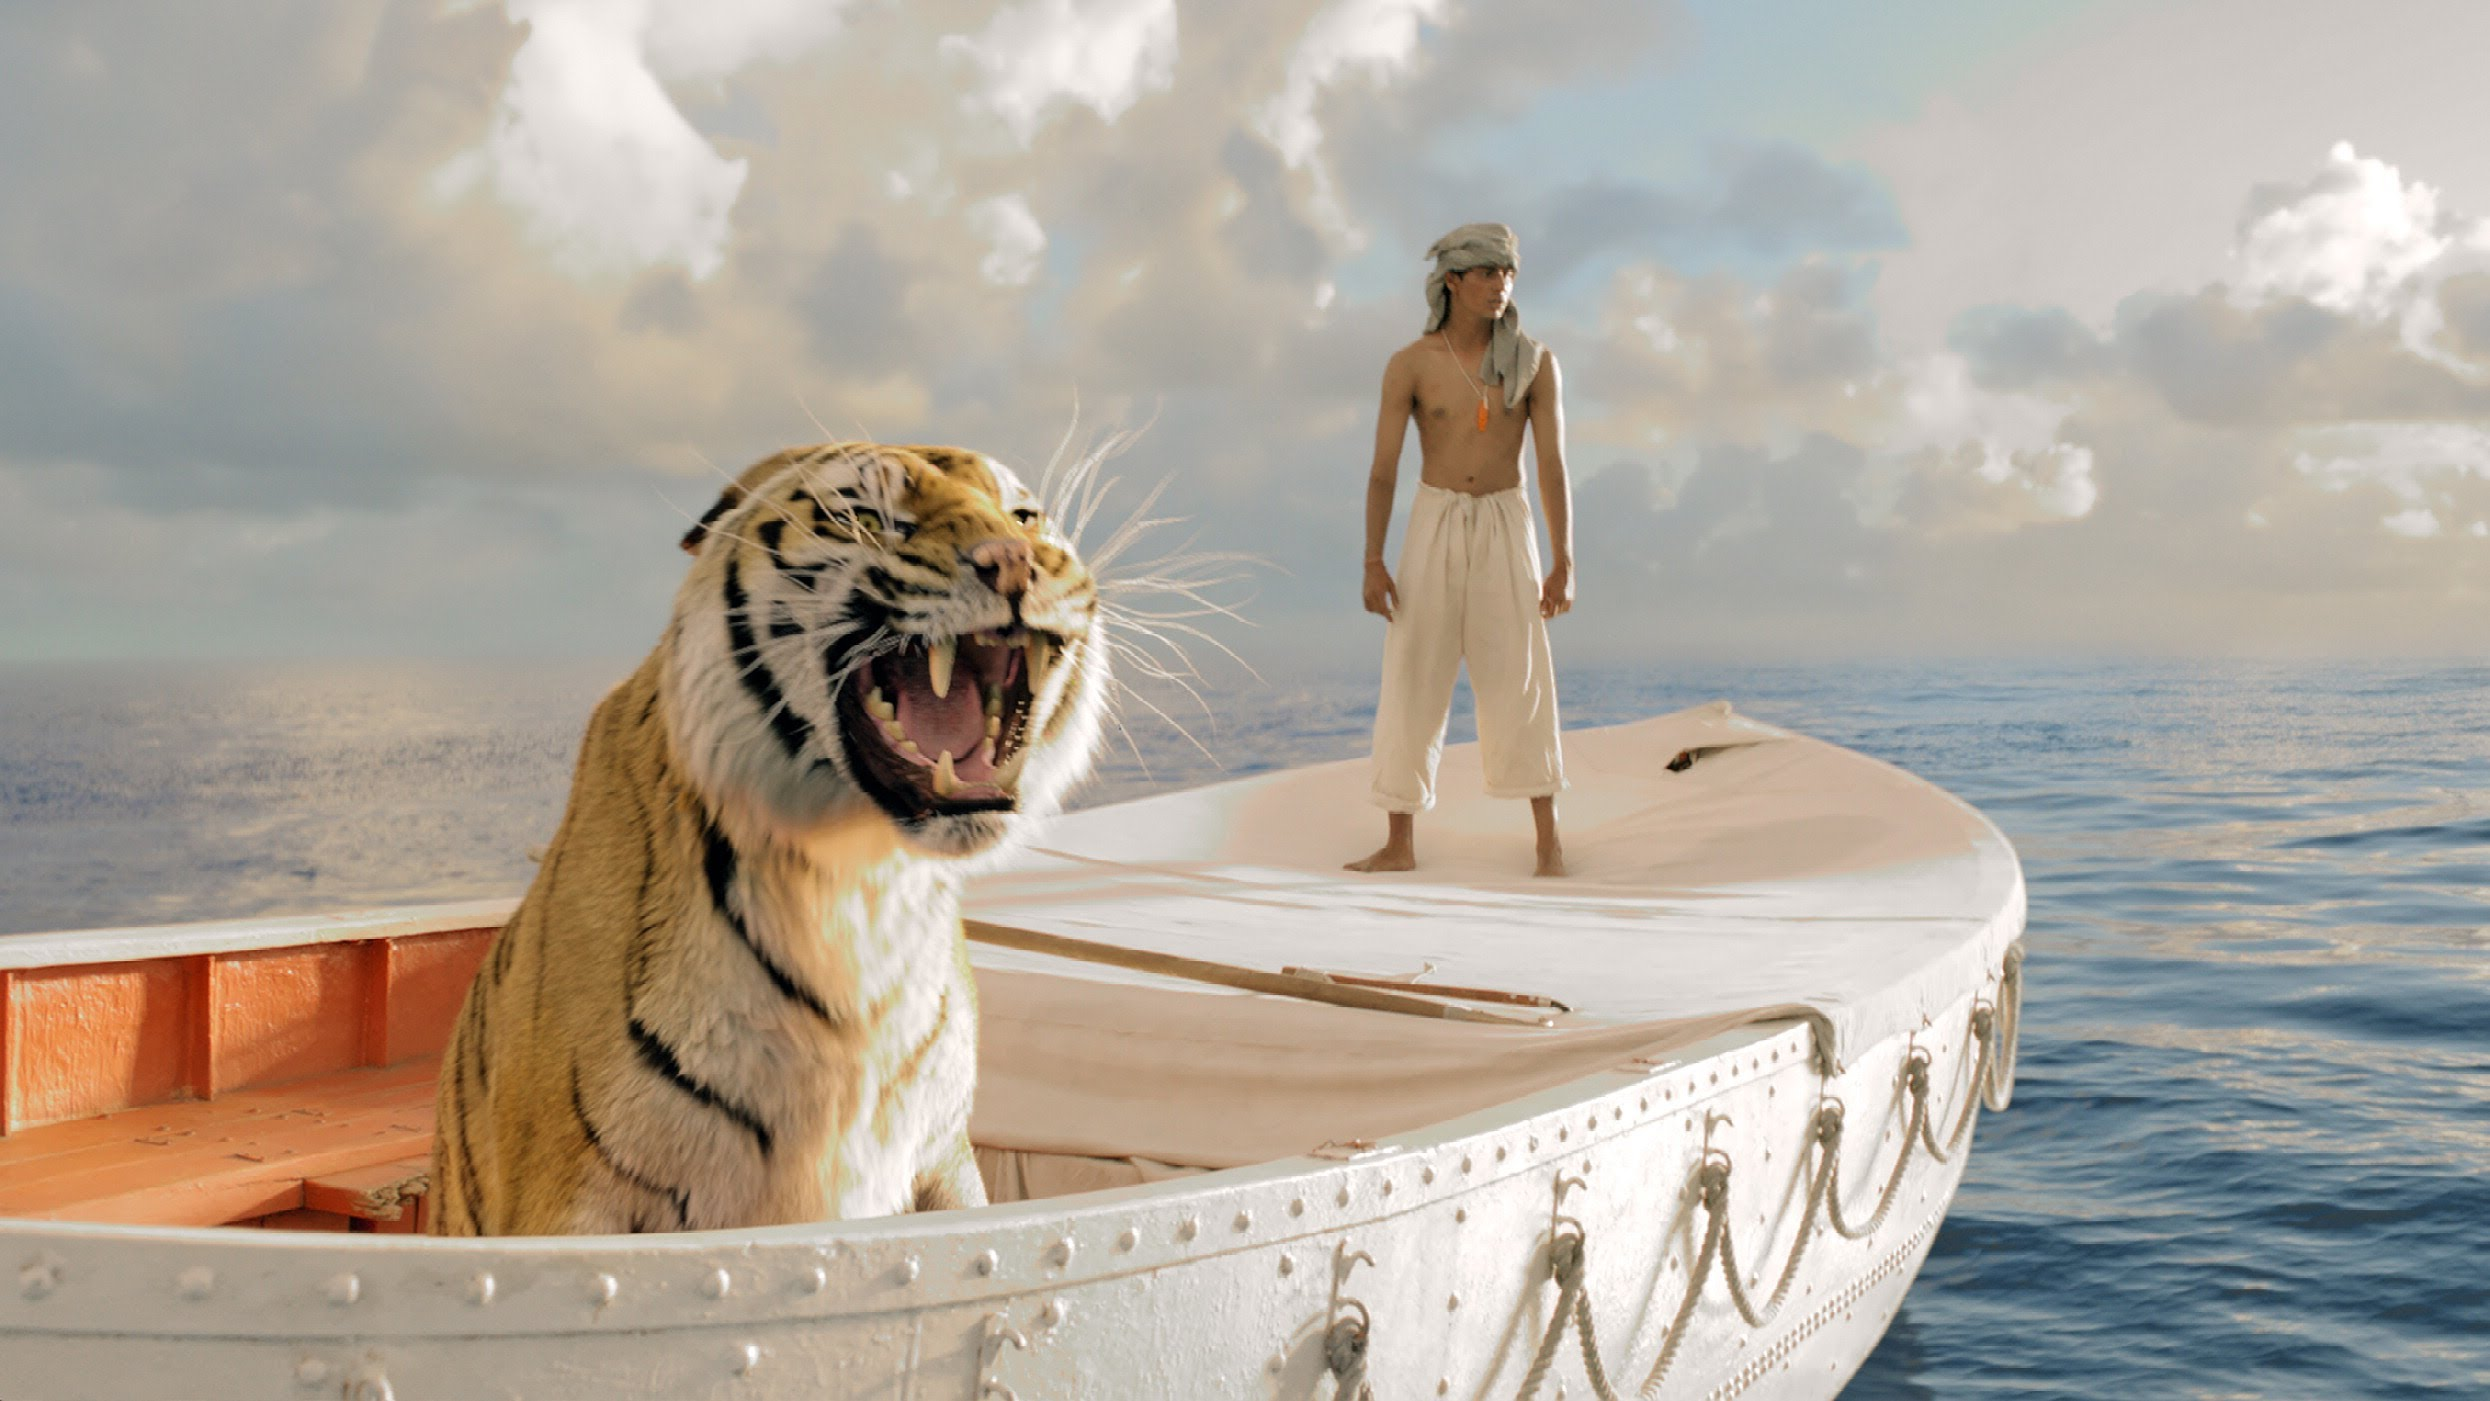 Best Cinematography Looking At Life Of Pi